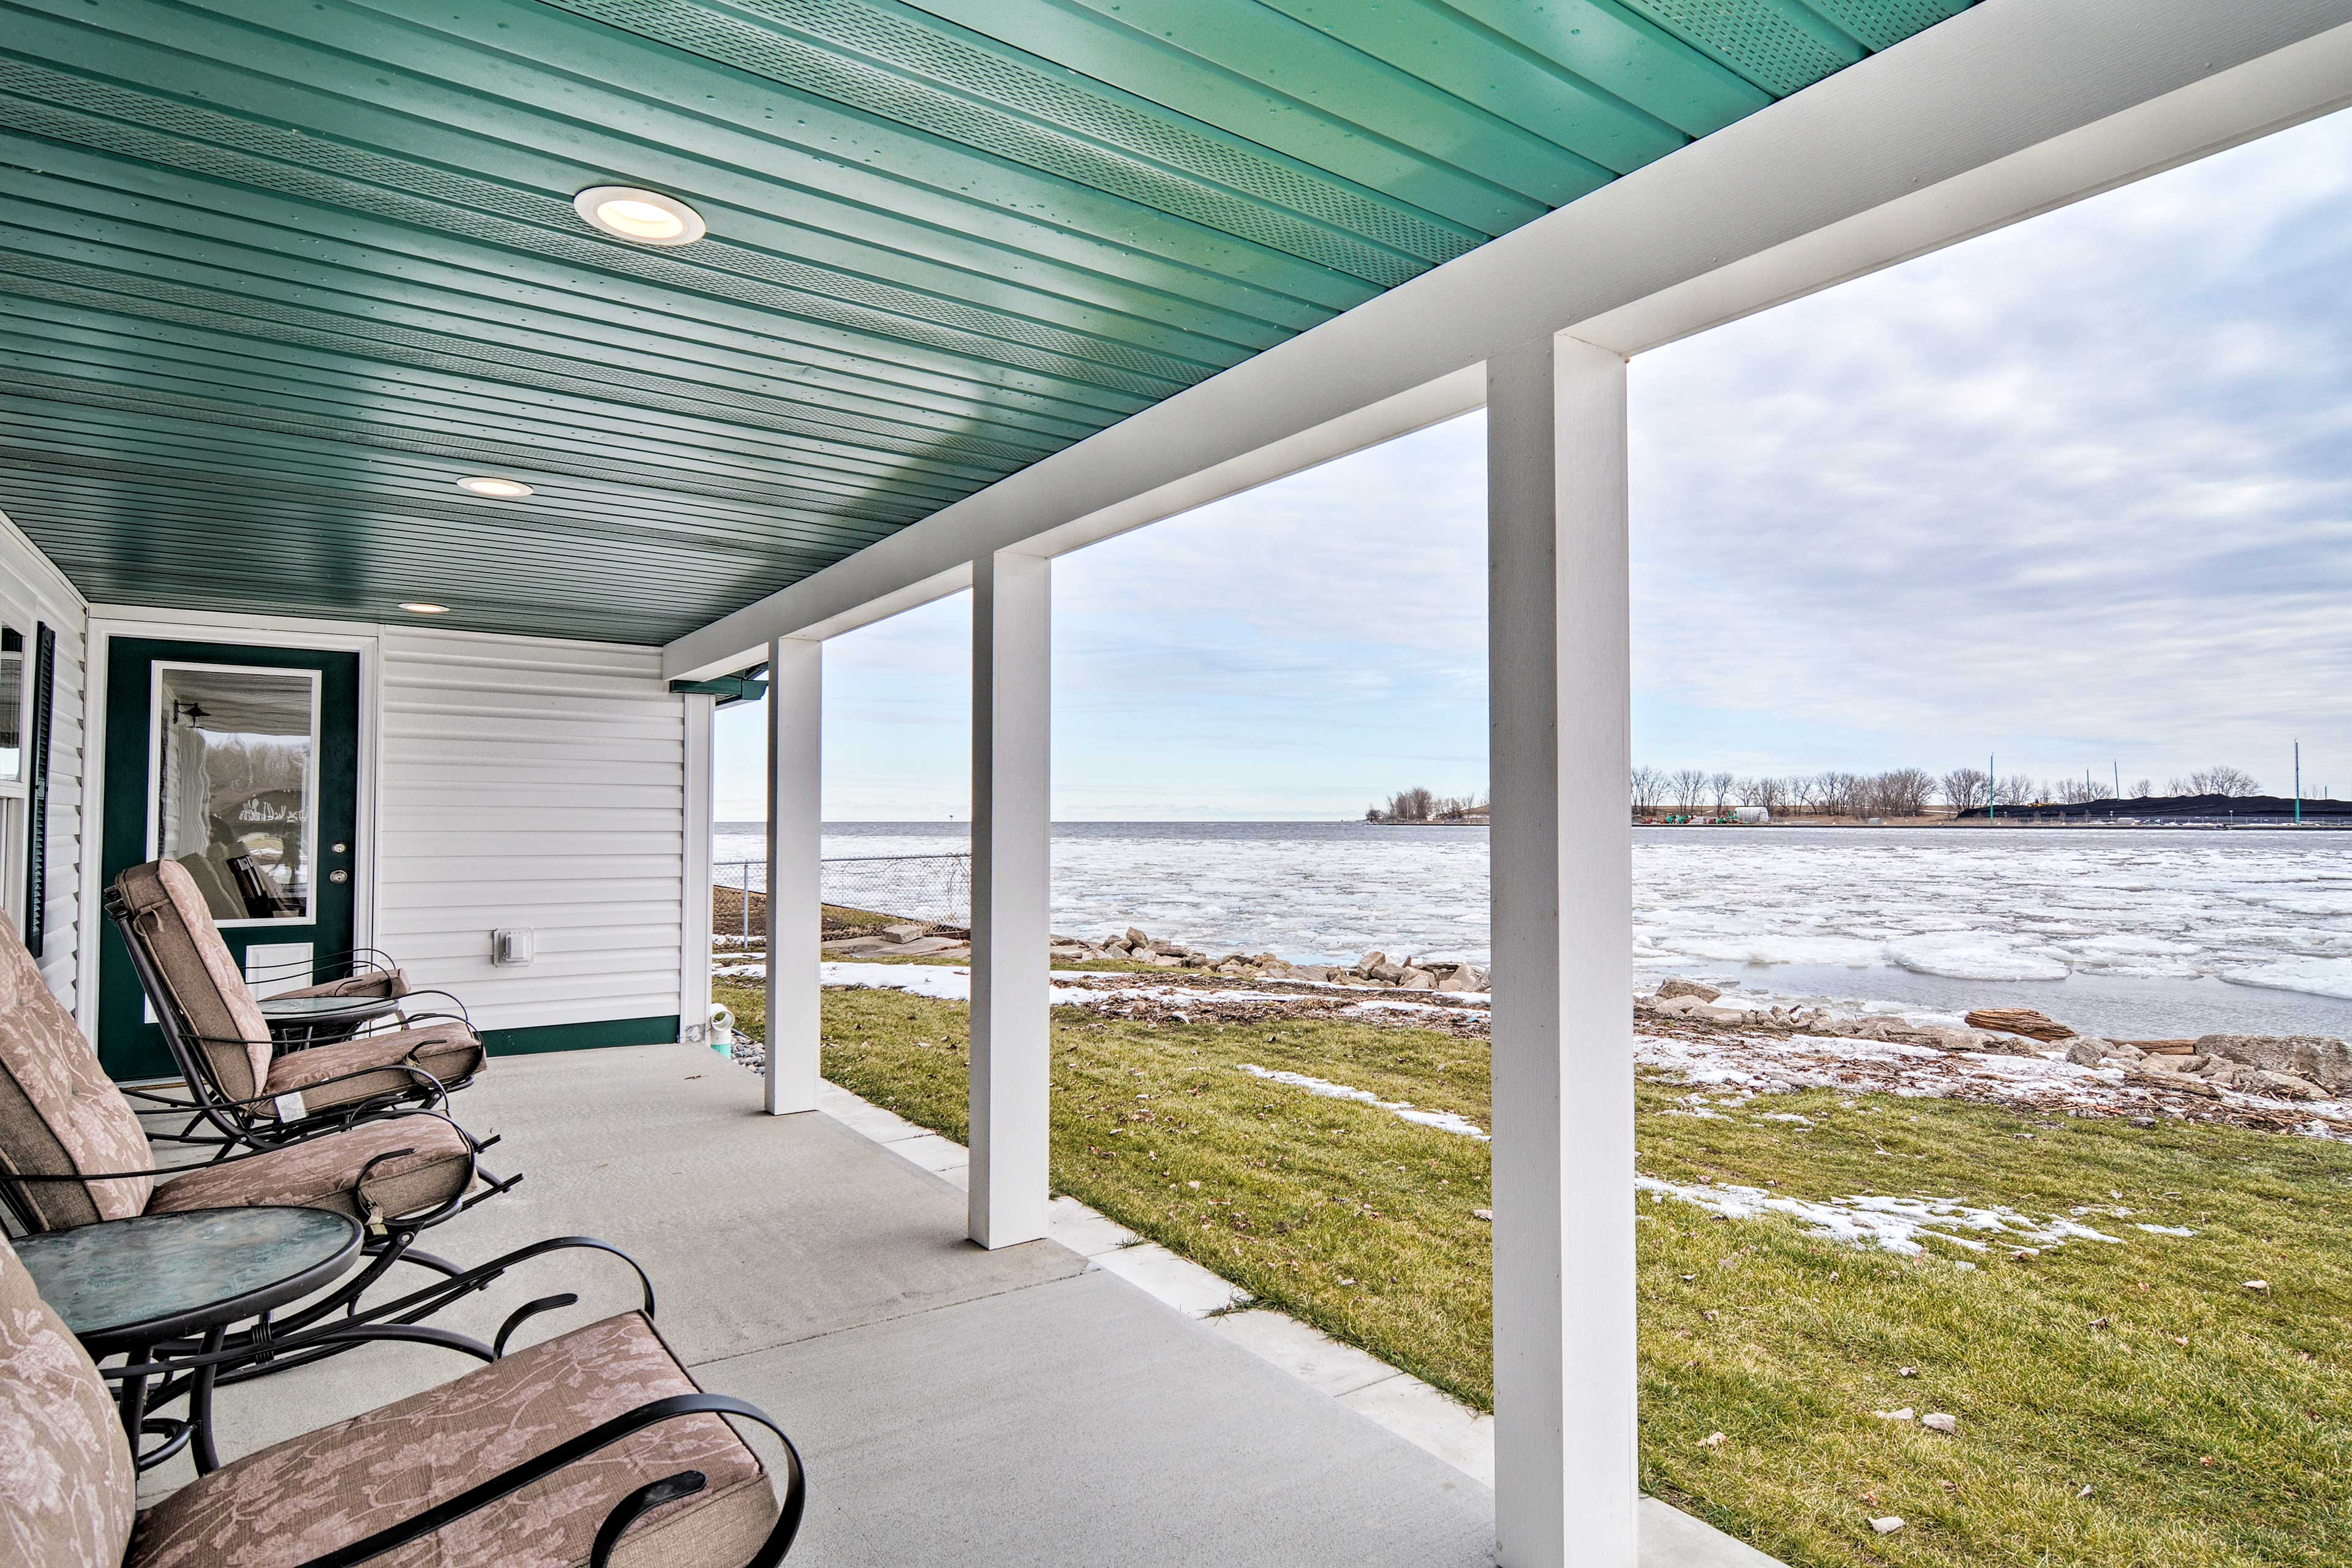 Take in those previous views of the water from your very own porch.